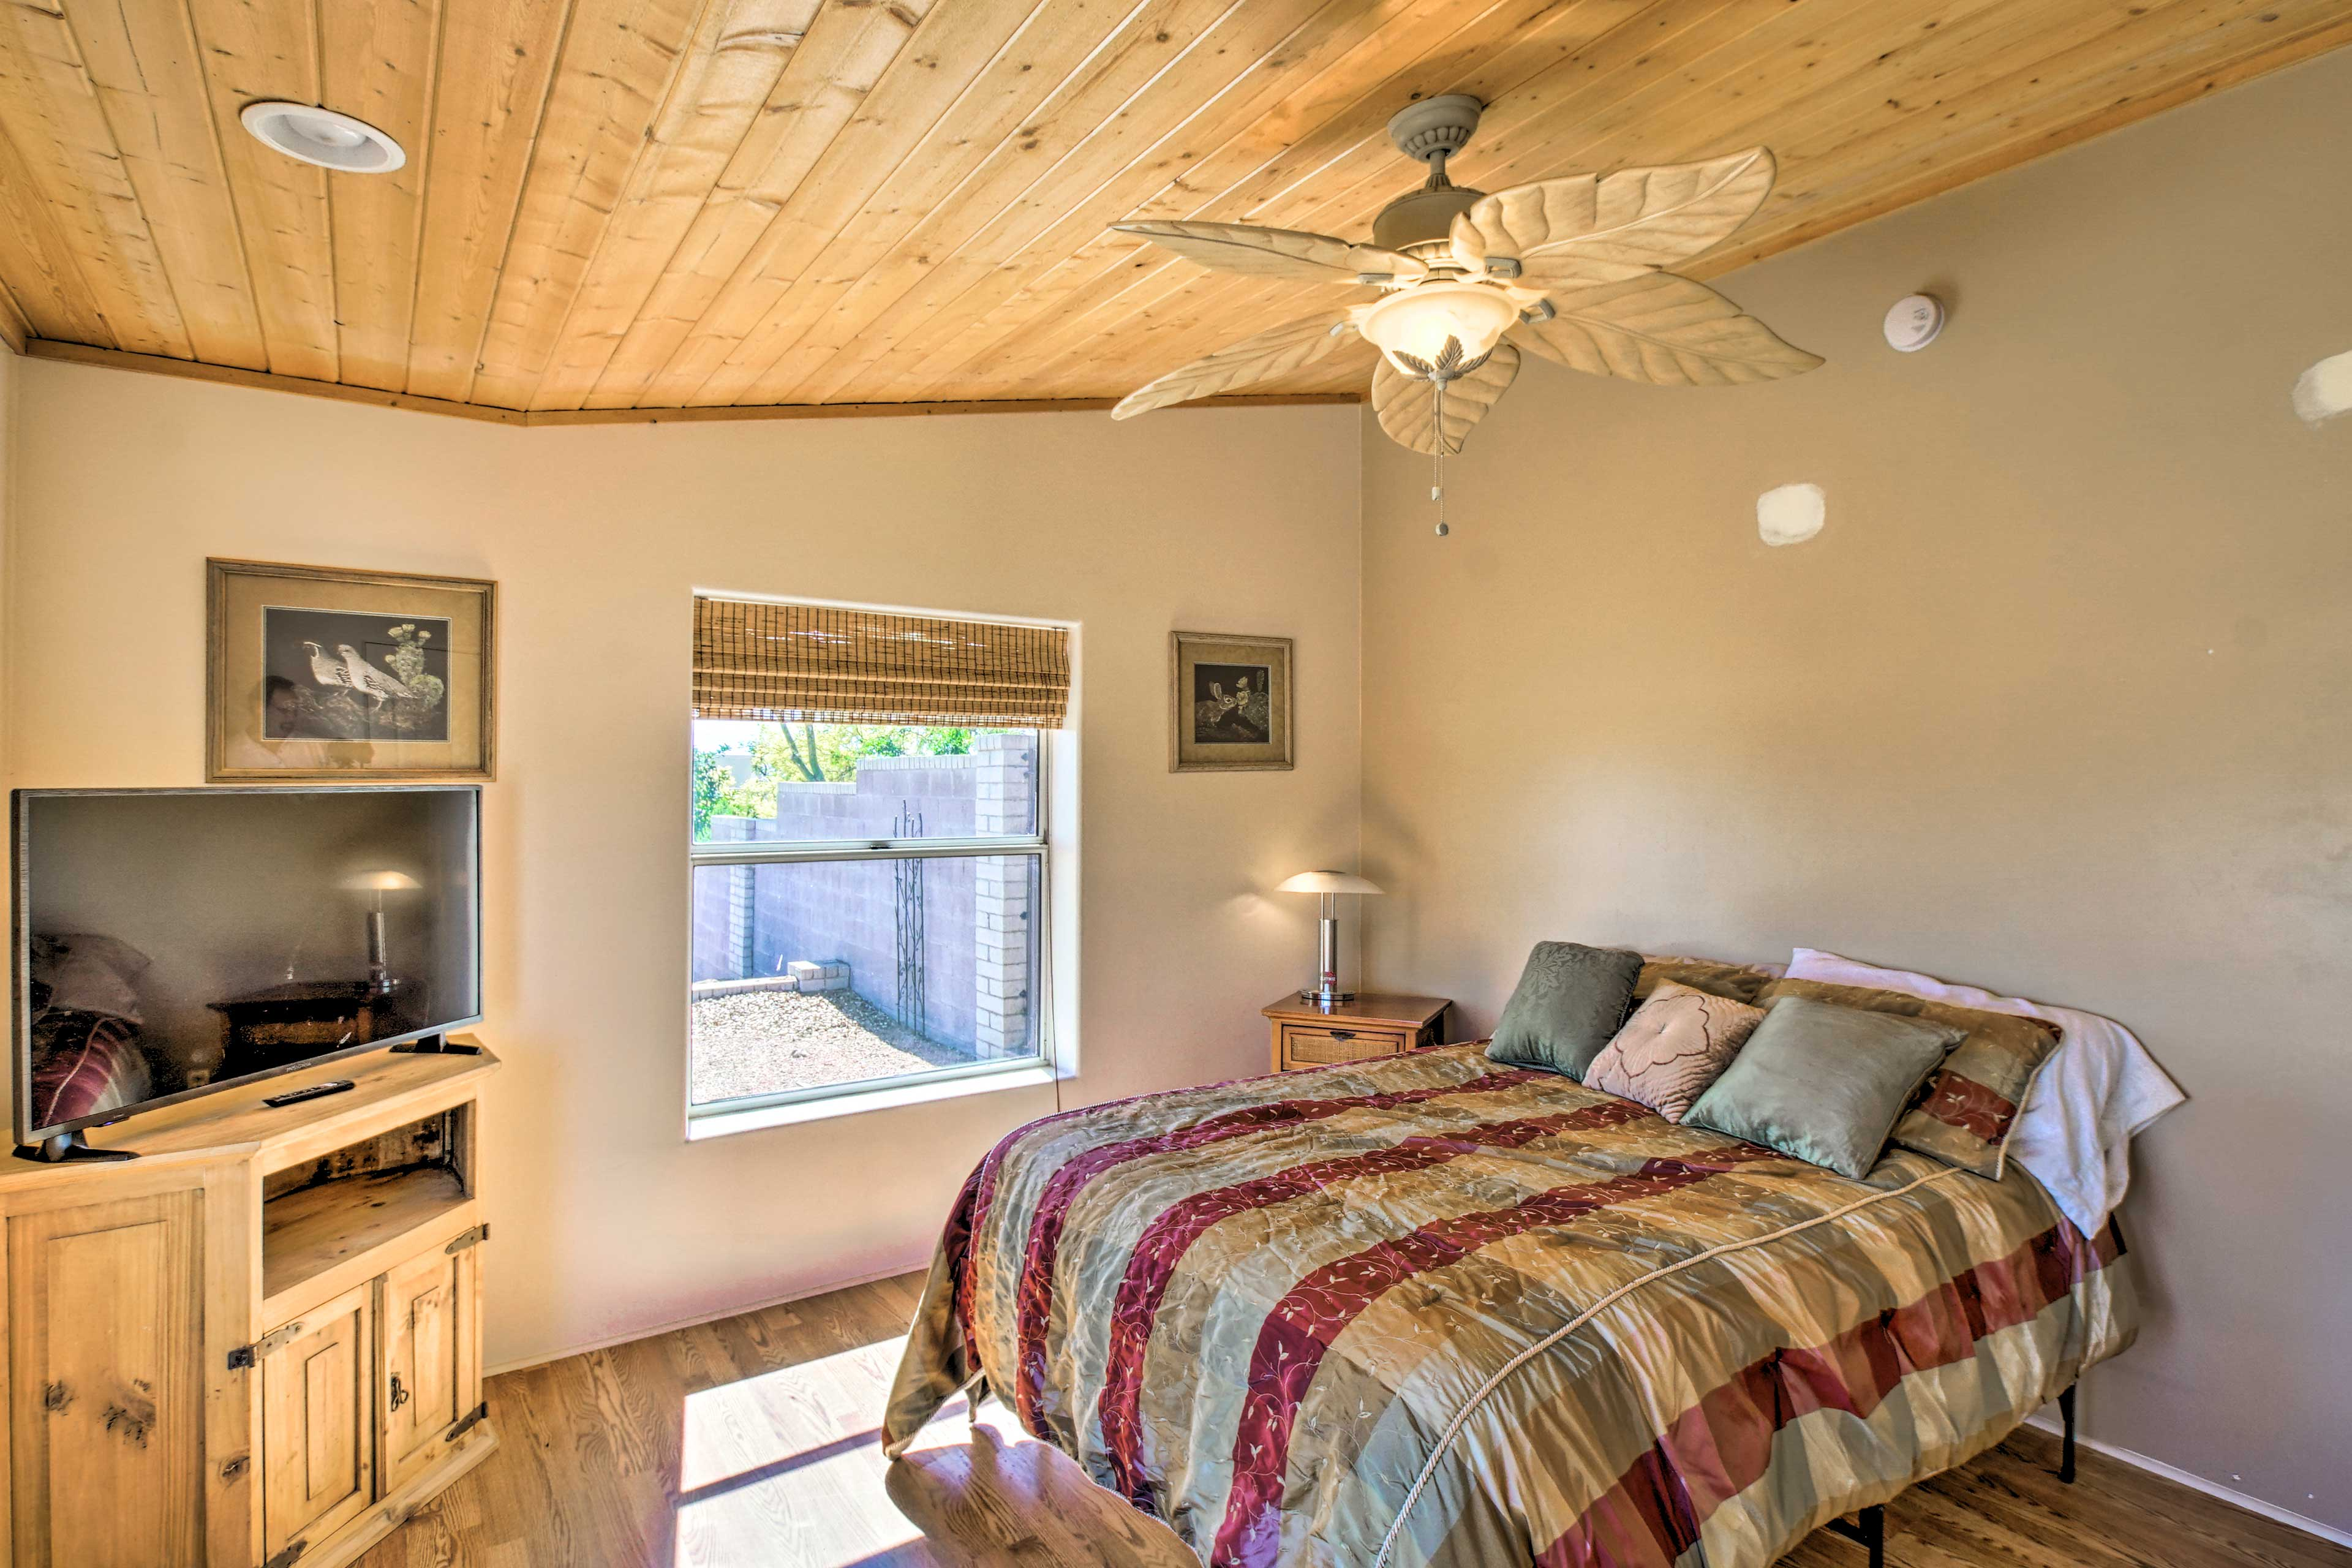 You'll find a queen bed and flat-screen TV in this second bedroom.